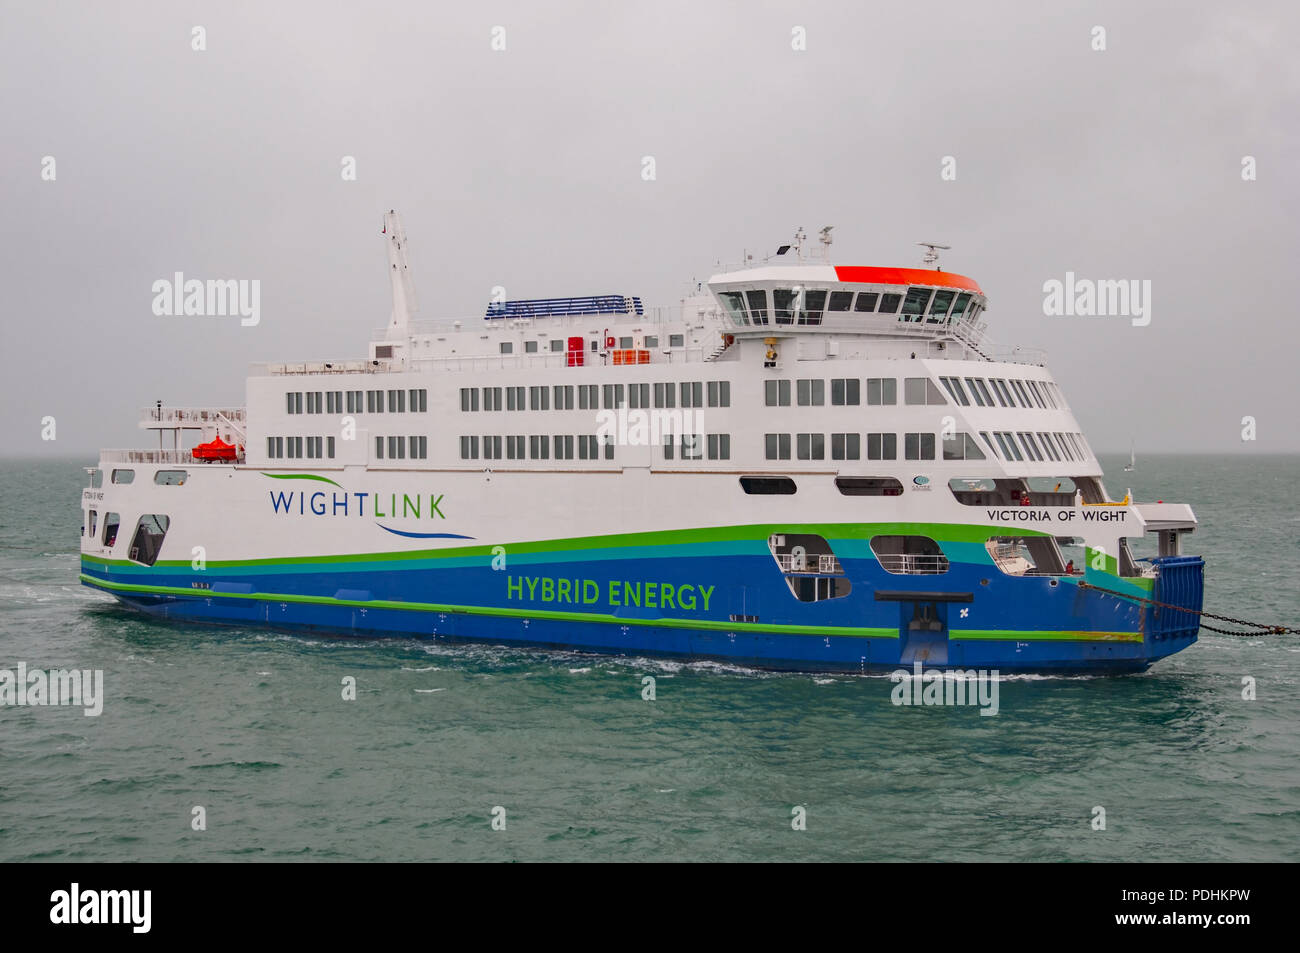 Portsmouth, UK. 10th August, 2018. The new Wightlink Isle of Wight (IOW) car / vehicle ferry MV Victoria of Wight, powered by hybrid energy, has arrived in the UK to be greeted by strong winds and torrential rain. Credit: Neil Watkin / Alamy Live News Stock Photo